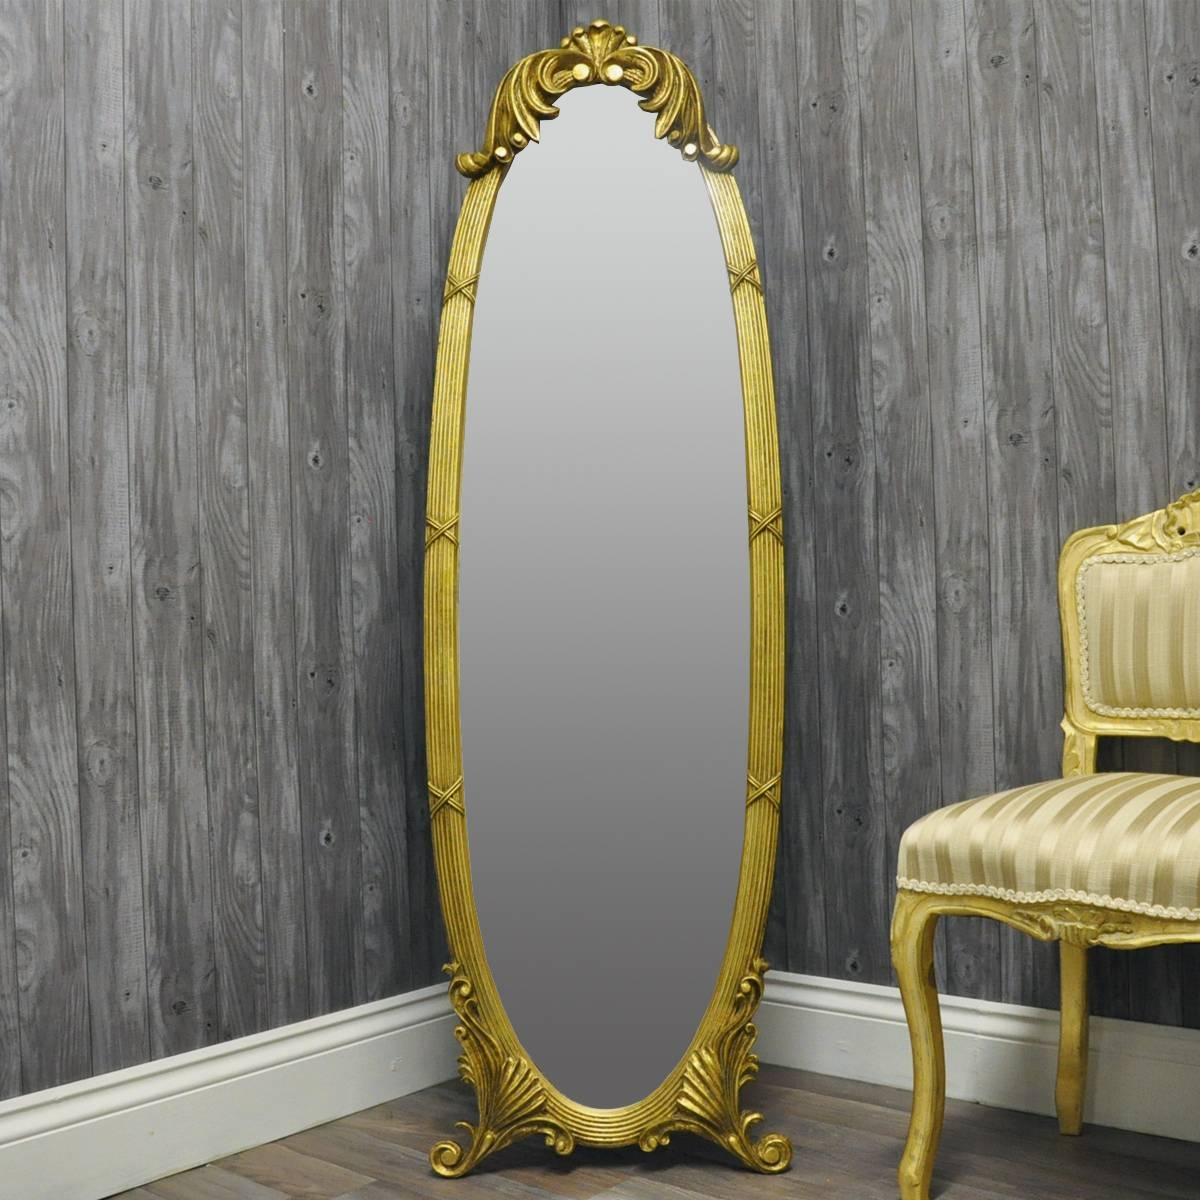 Choose From A Range Of Full Length Cheval Mirrors pertaining to Full Length French Mirrors (Image 8 of 25)